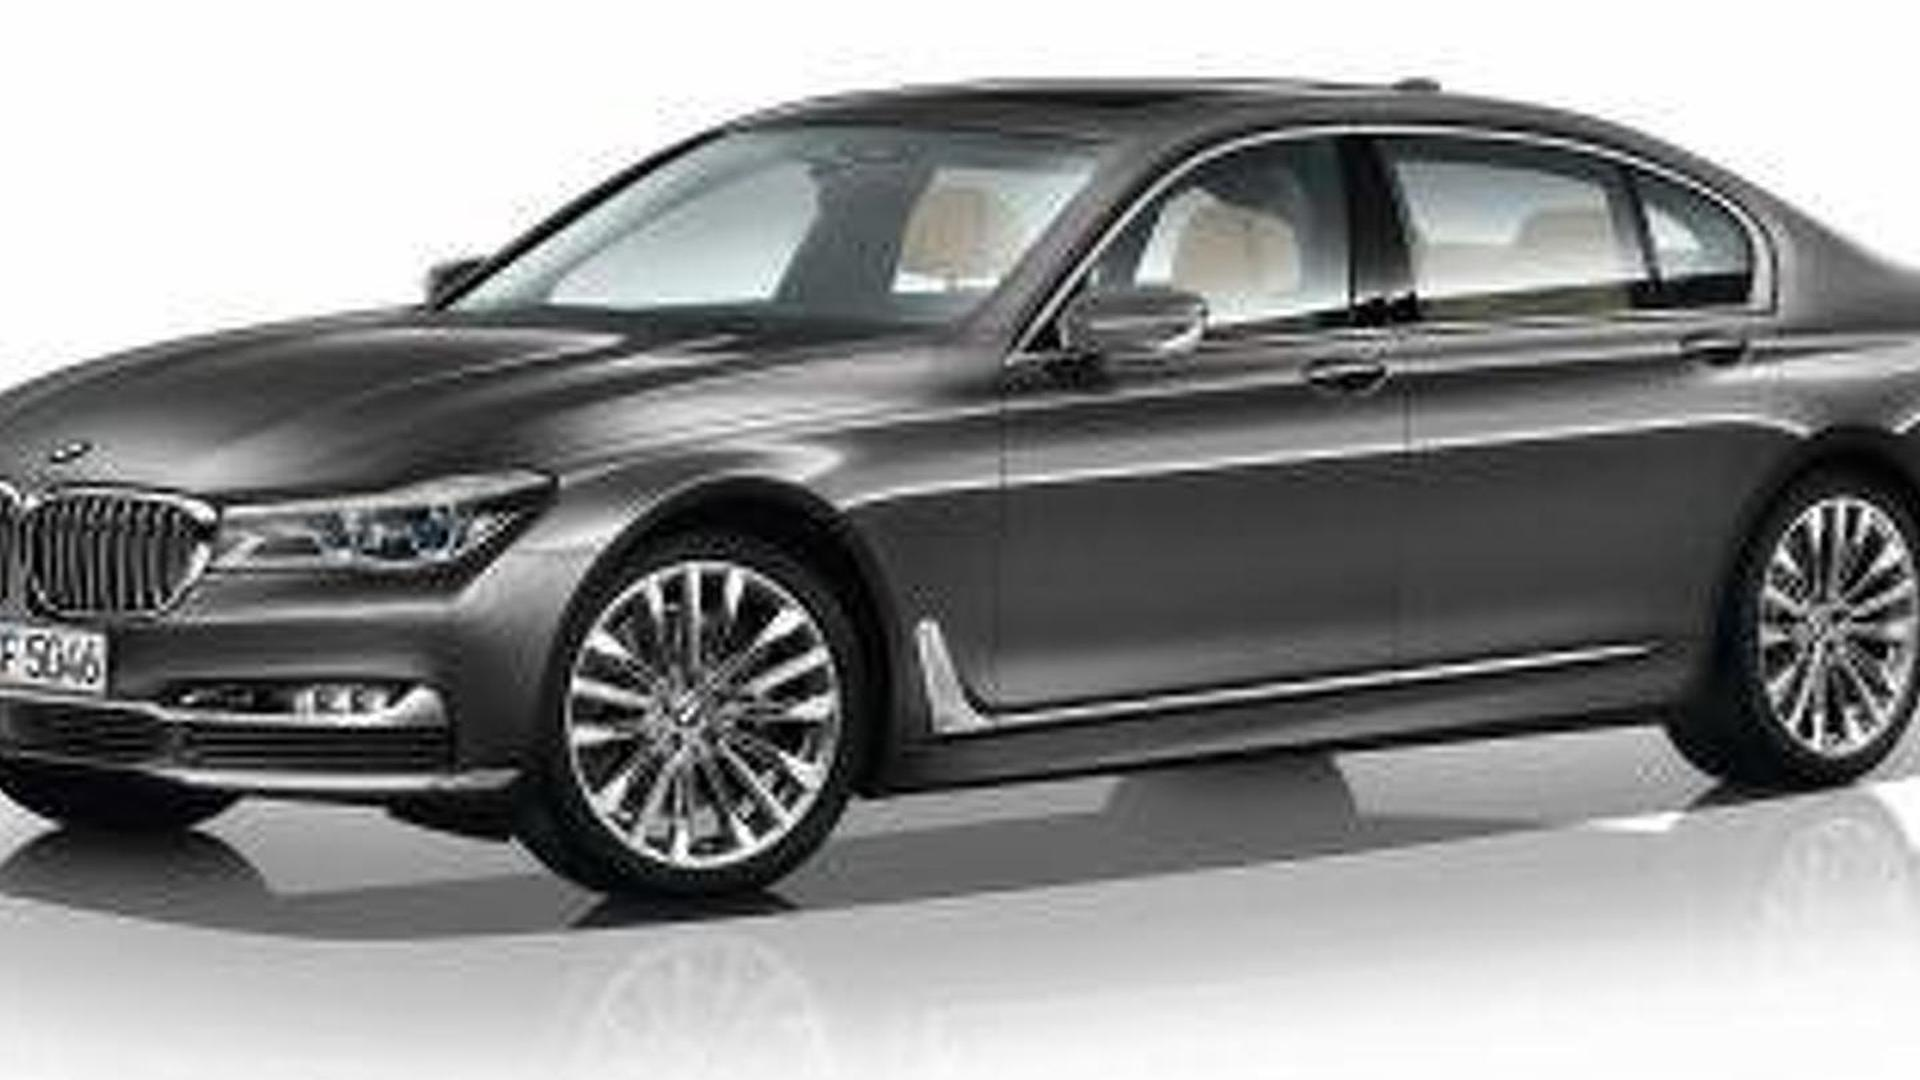 2016 BMW 7-Series pricing and options accidentally revealed on Austrian configurator (19 photos)